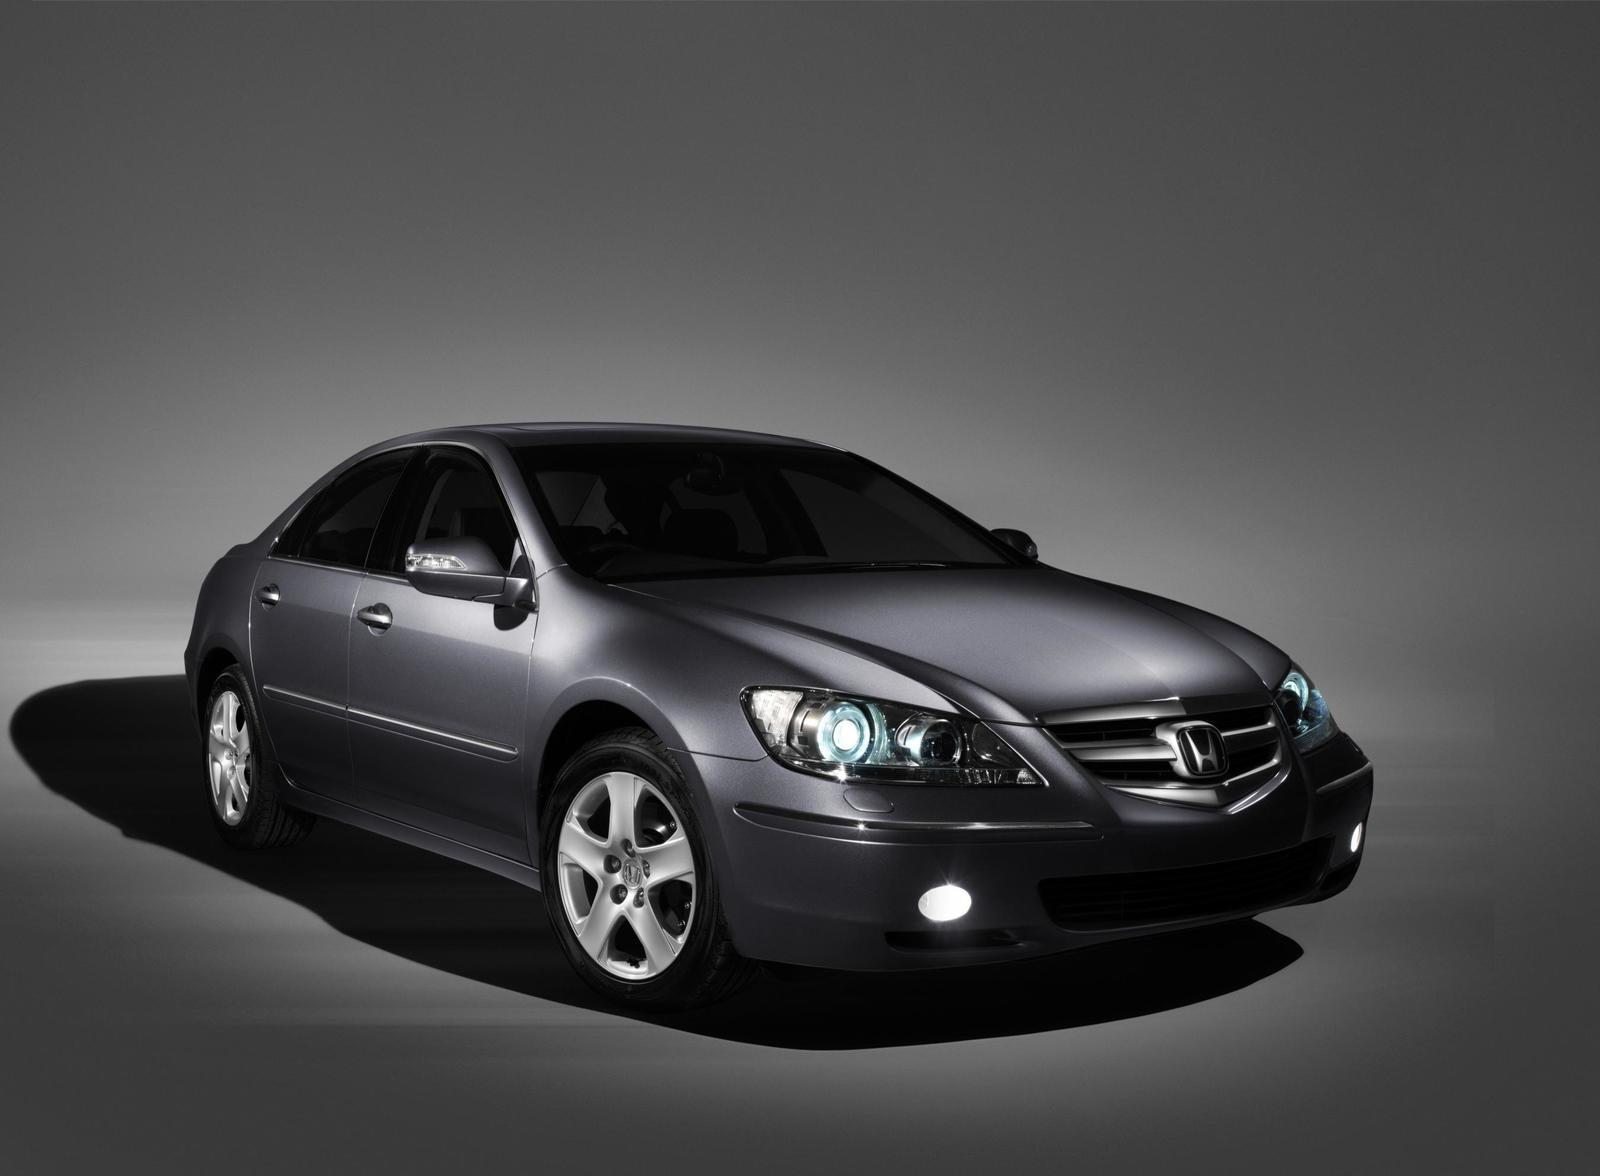 2007 honda legend acura rl review top speed. Black Bedroom Furniture Sets. Home Design Ideas